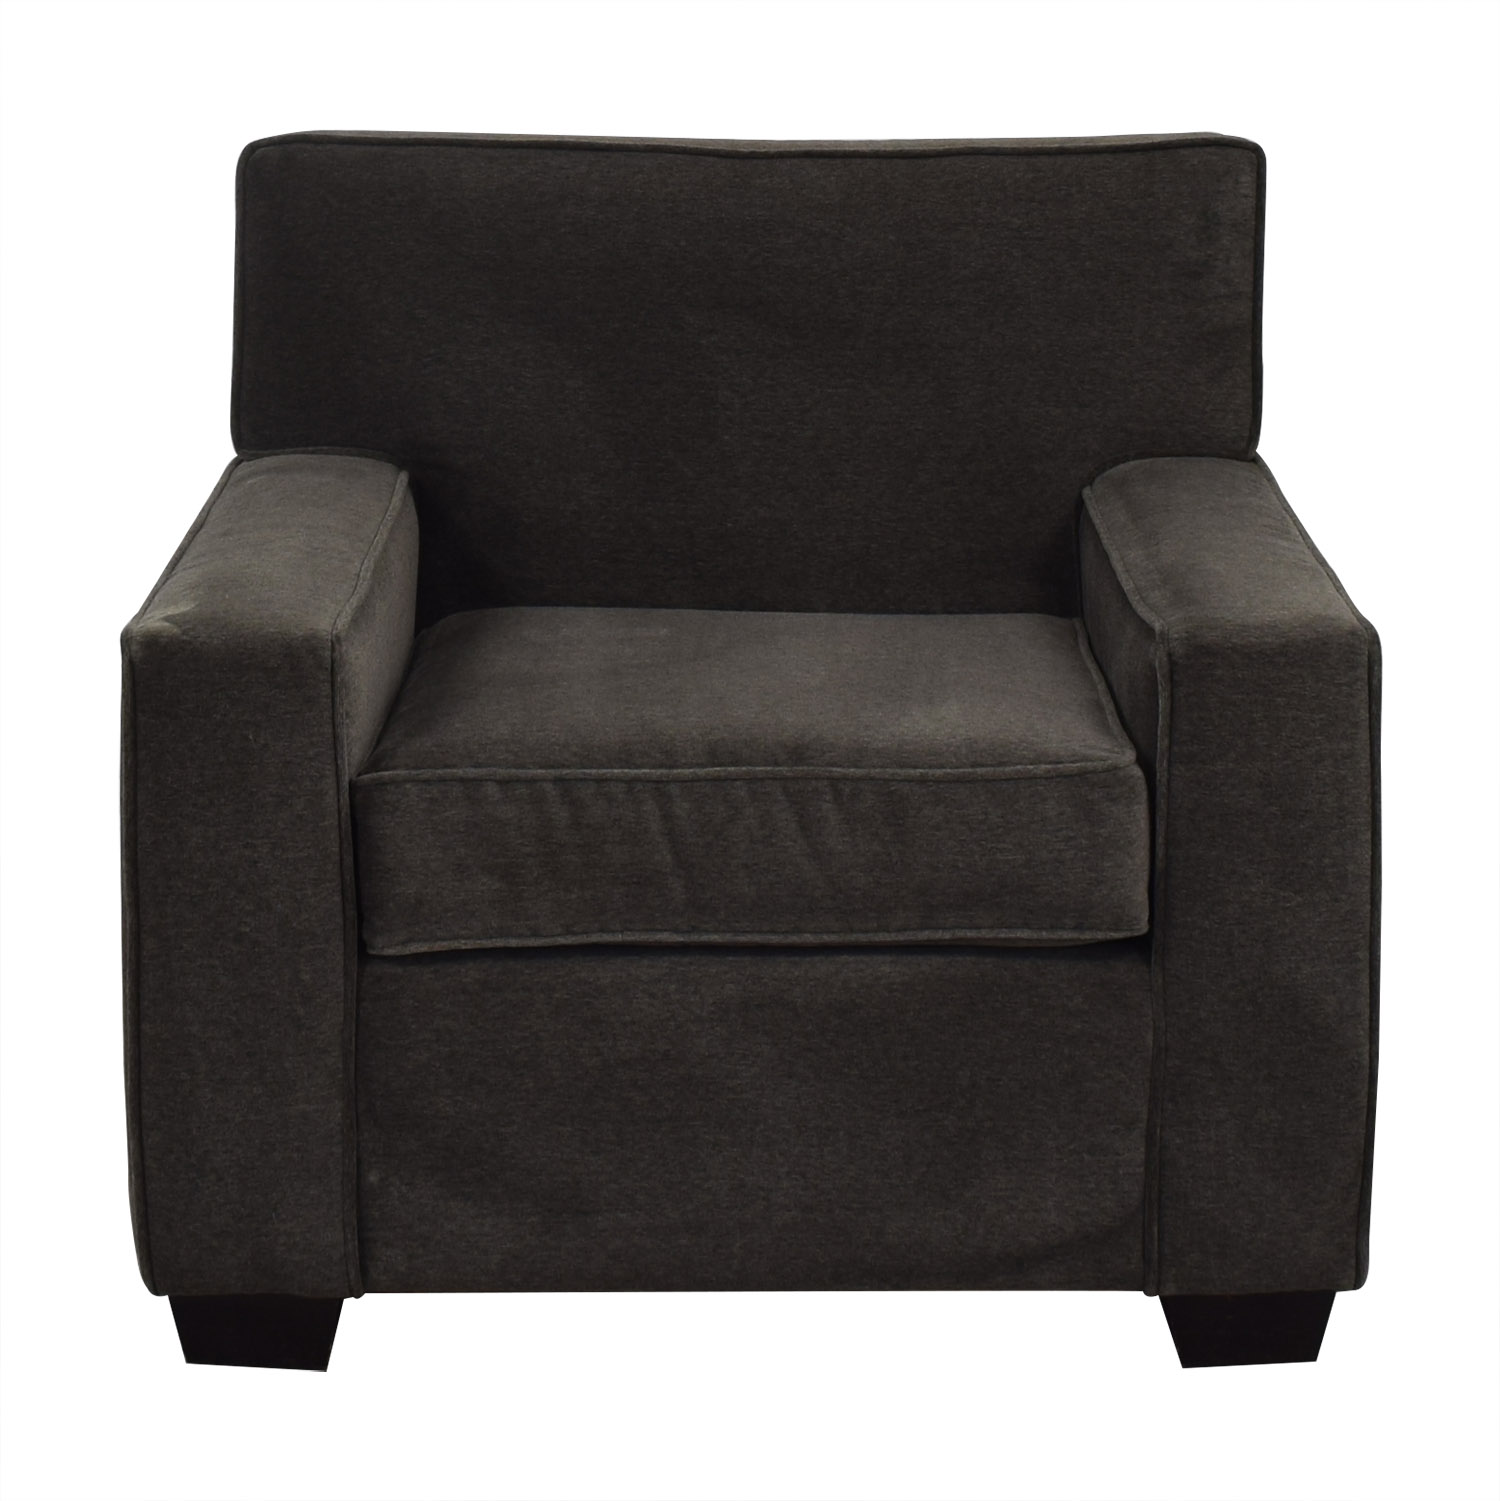 buy Design Within Reach Lounge Chair Design Within Reach Accent Chairs